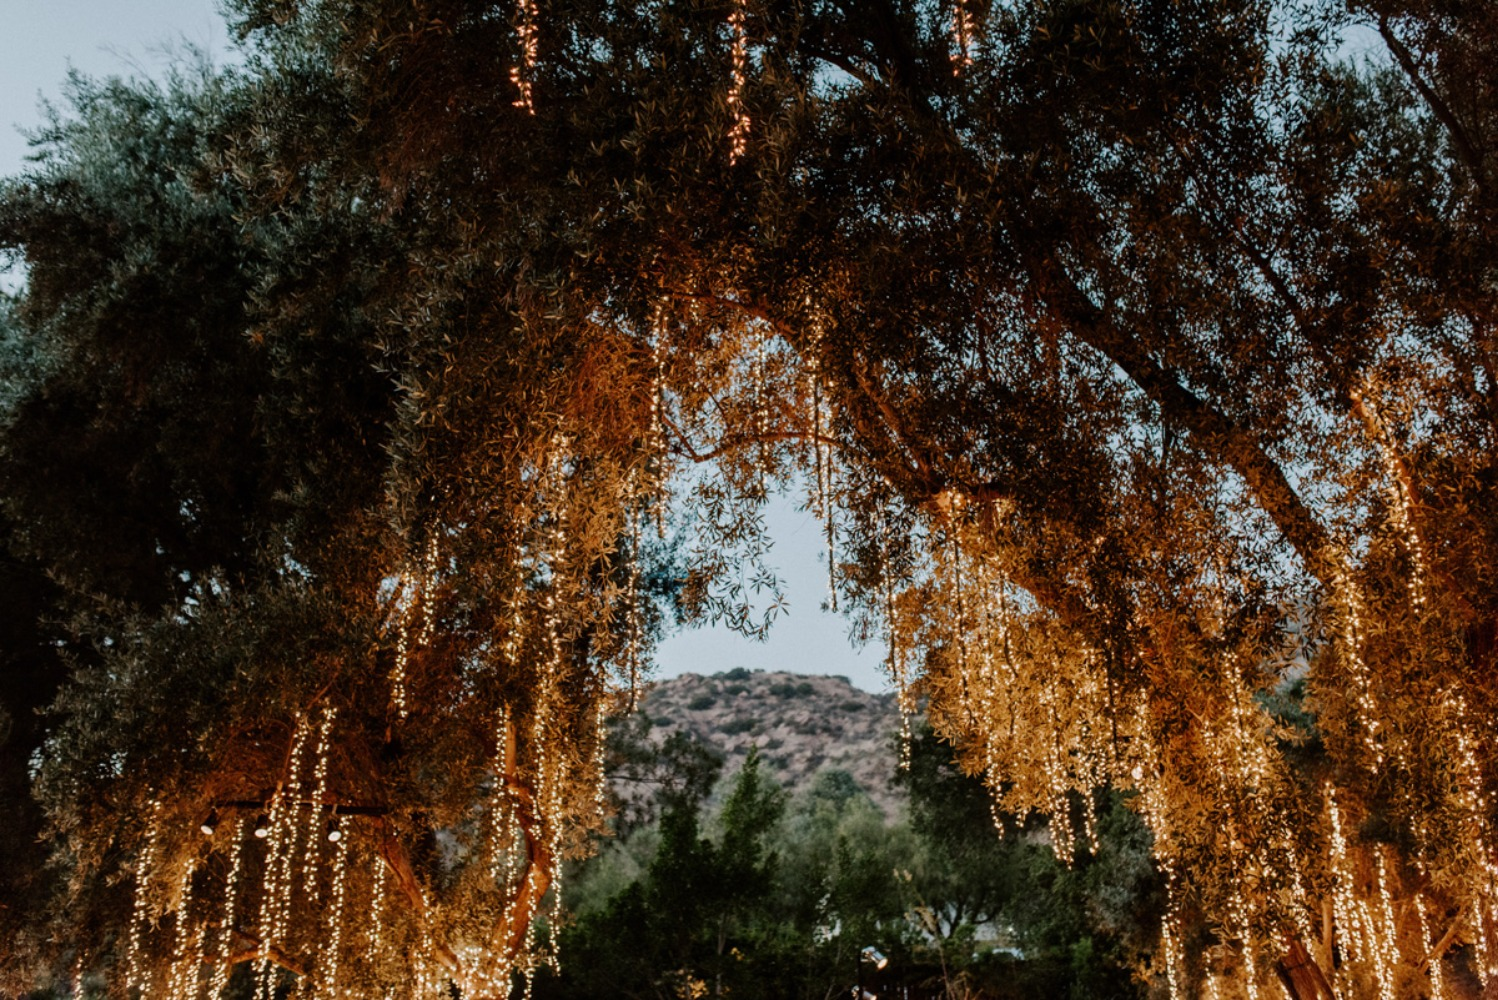 trees dripping with lights